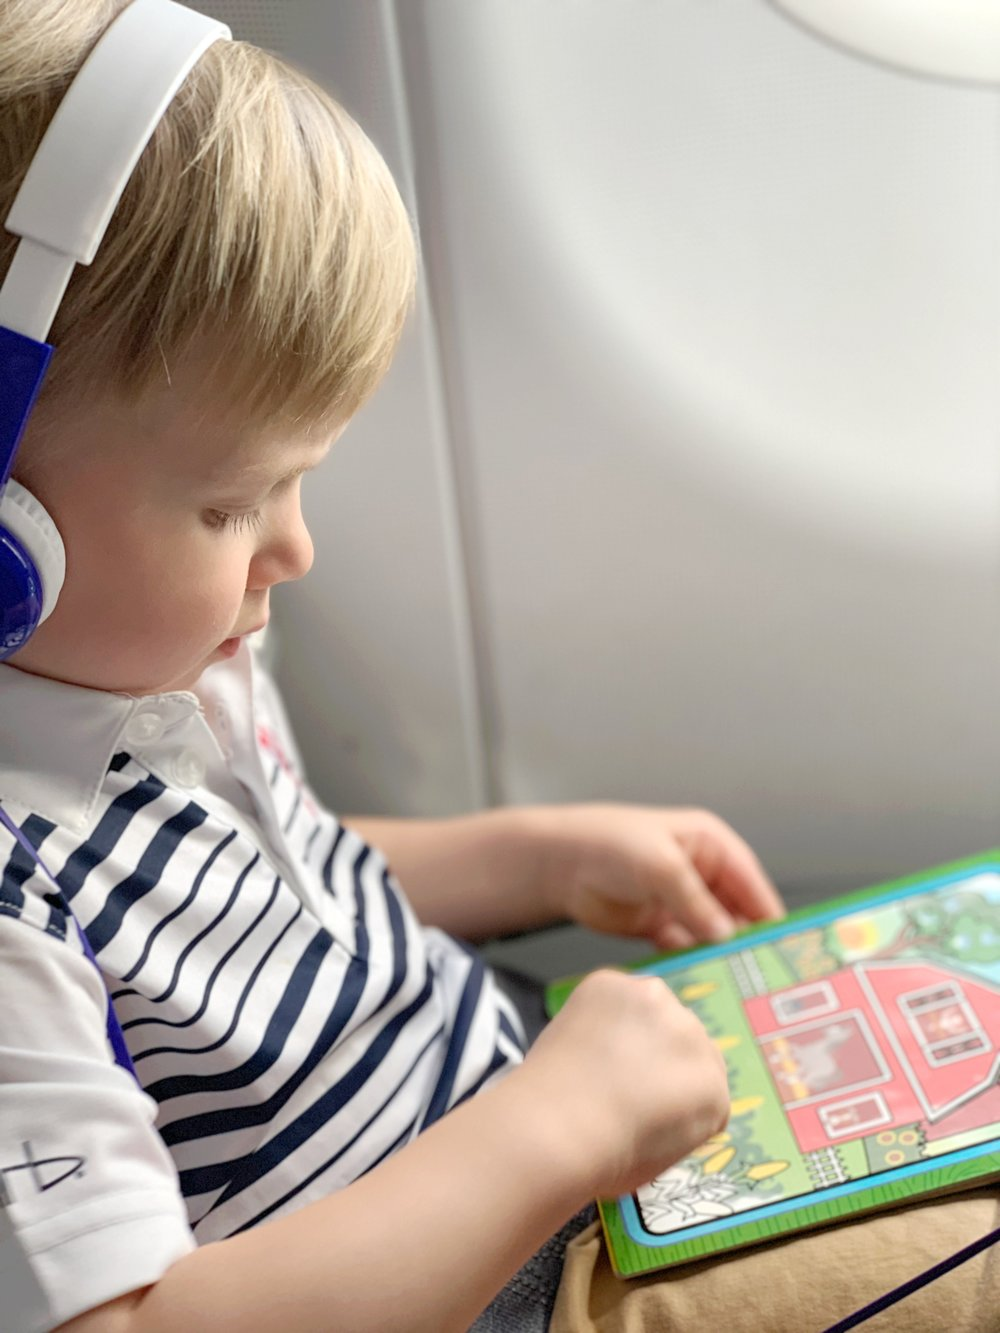 little boy with headphones on coloring on an airplane